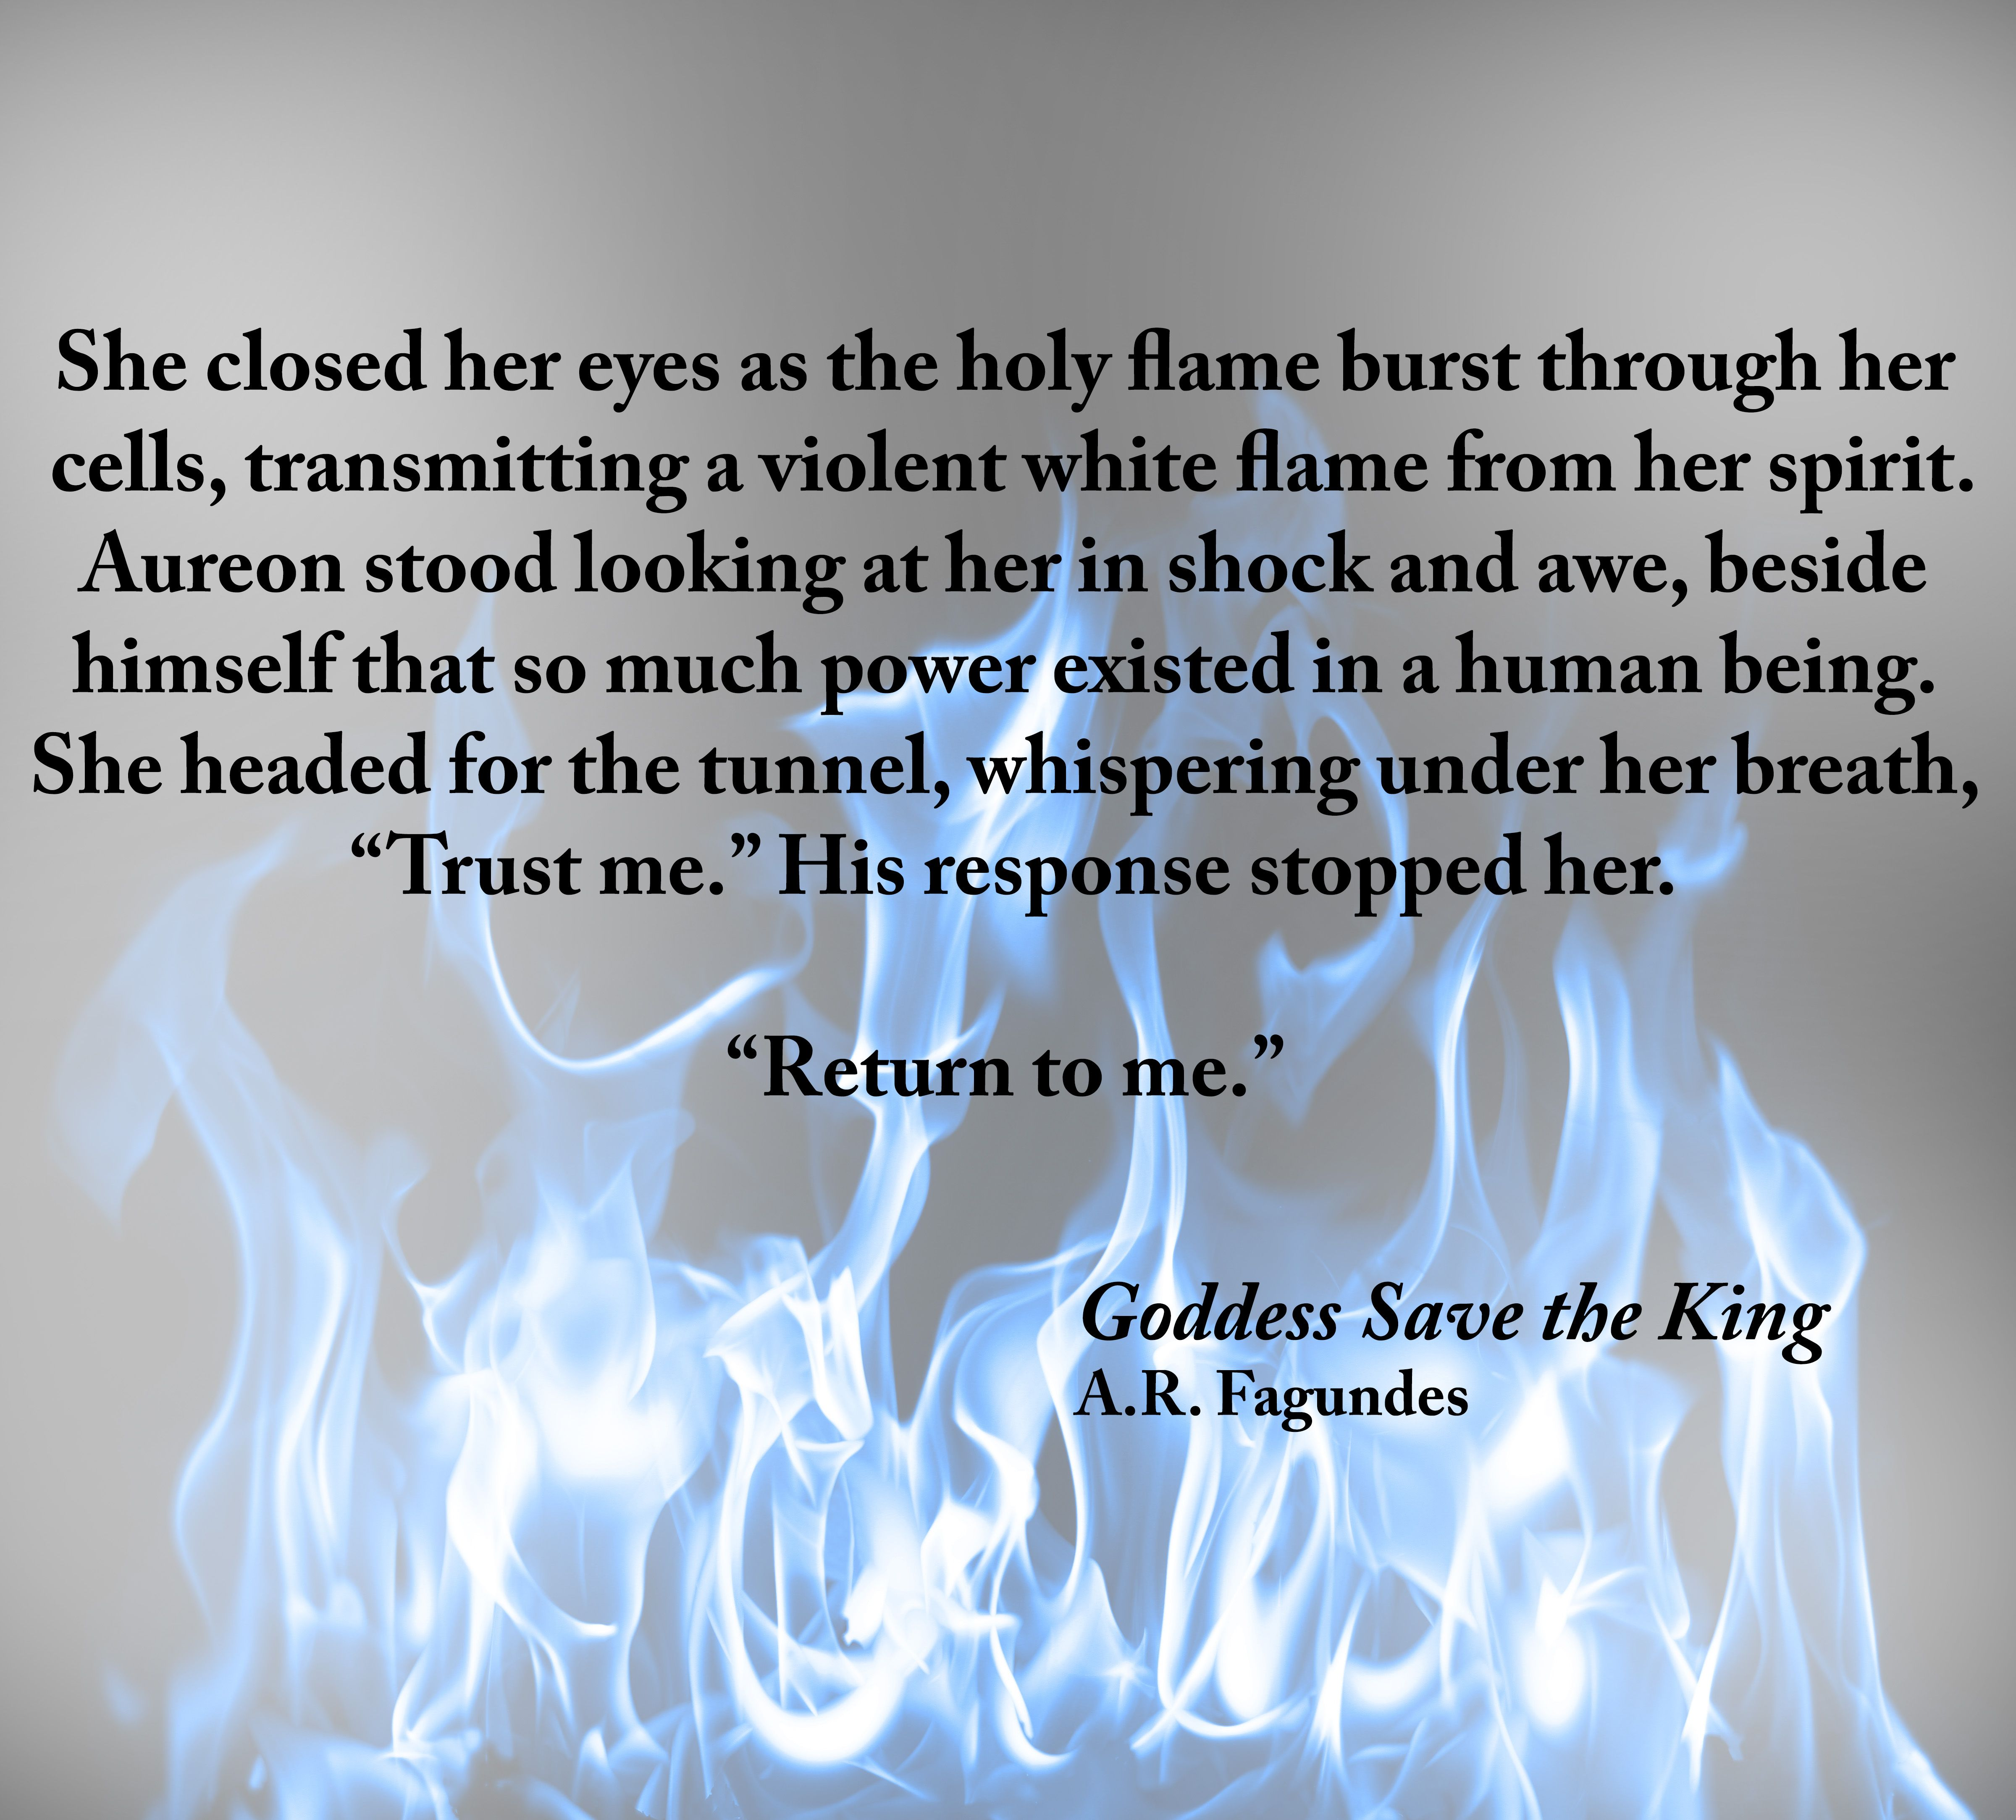 Goddess Save the King, book 1 of The Diviner Chronicles